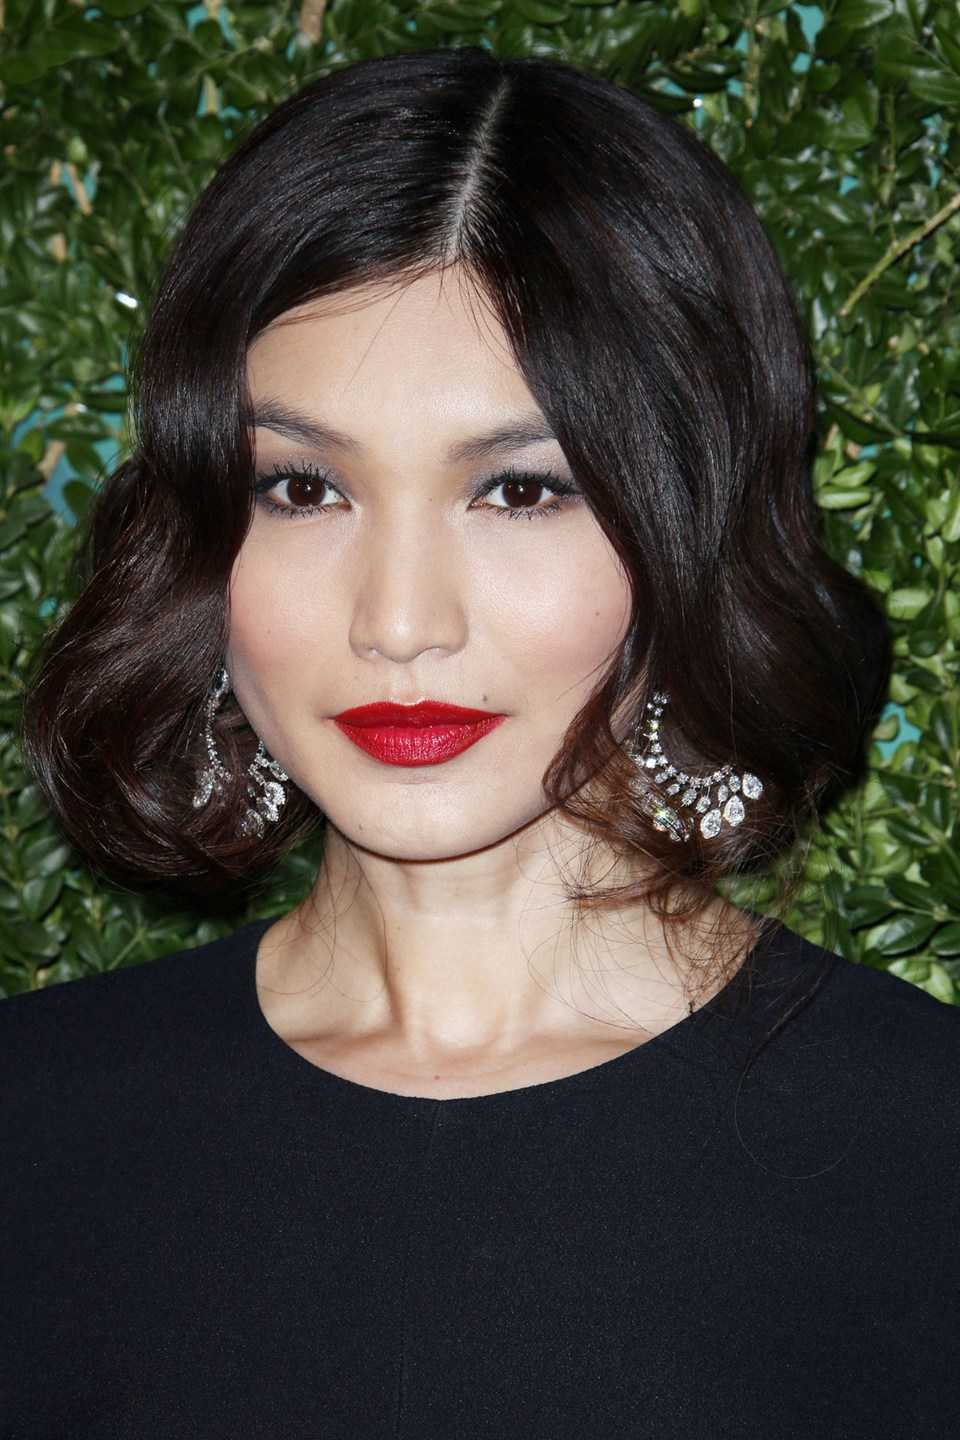 Fancy short hair for the party season without the commitment? Like Gigi Hadid, Gemma Chan has gone for a faux short style for retro appeal and added volume.